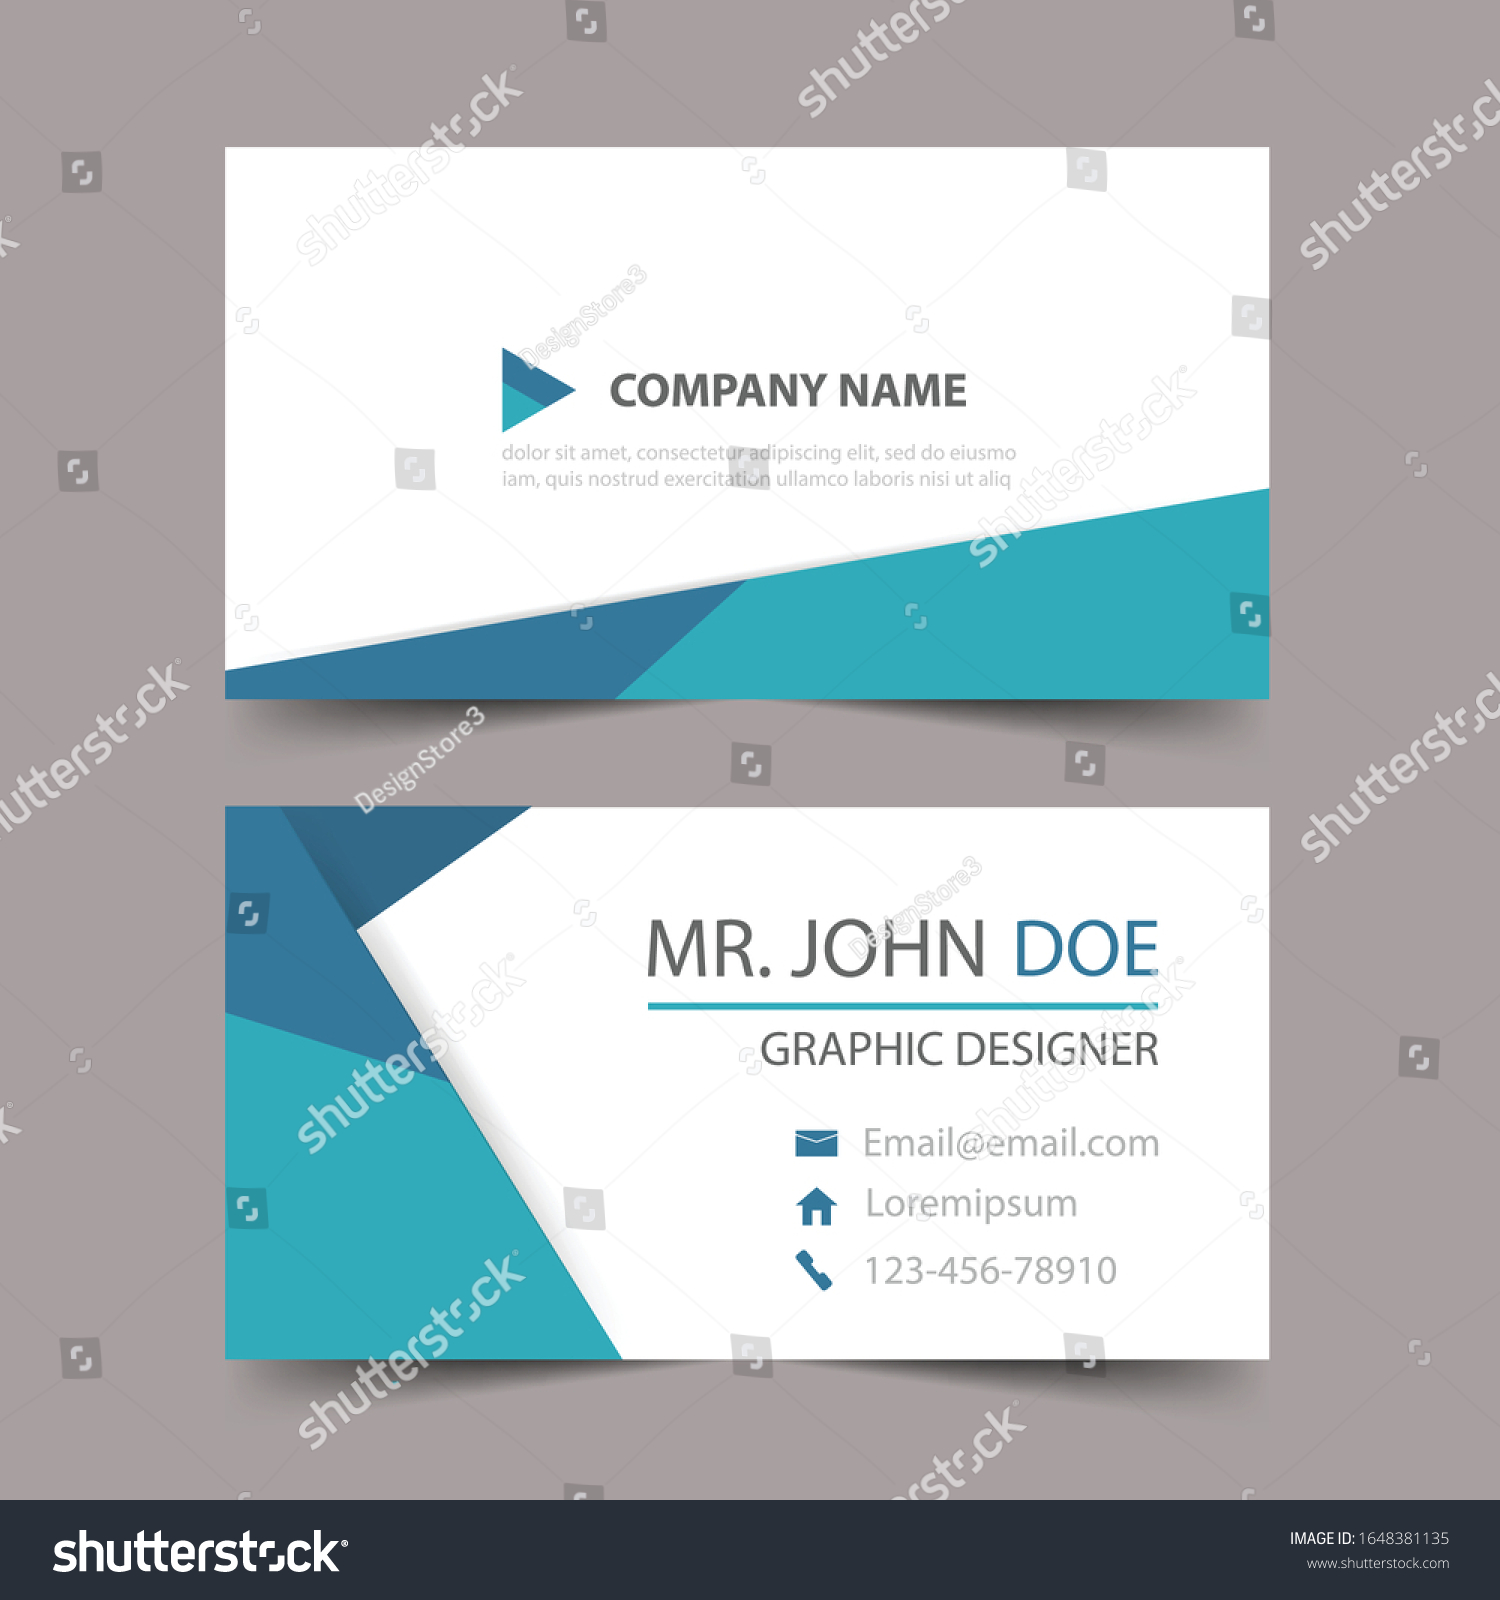 Modern Business Card Template Design Contact Stock Vector Royalty Free 1648381135